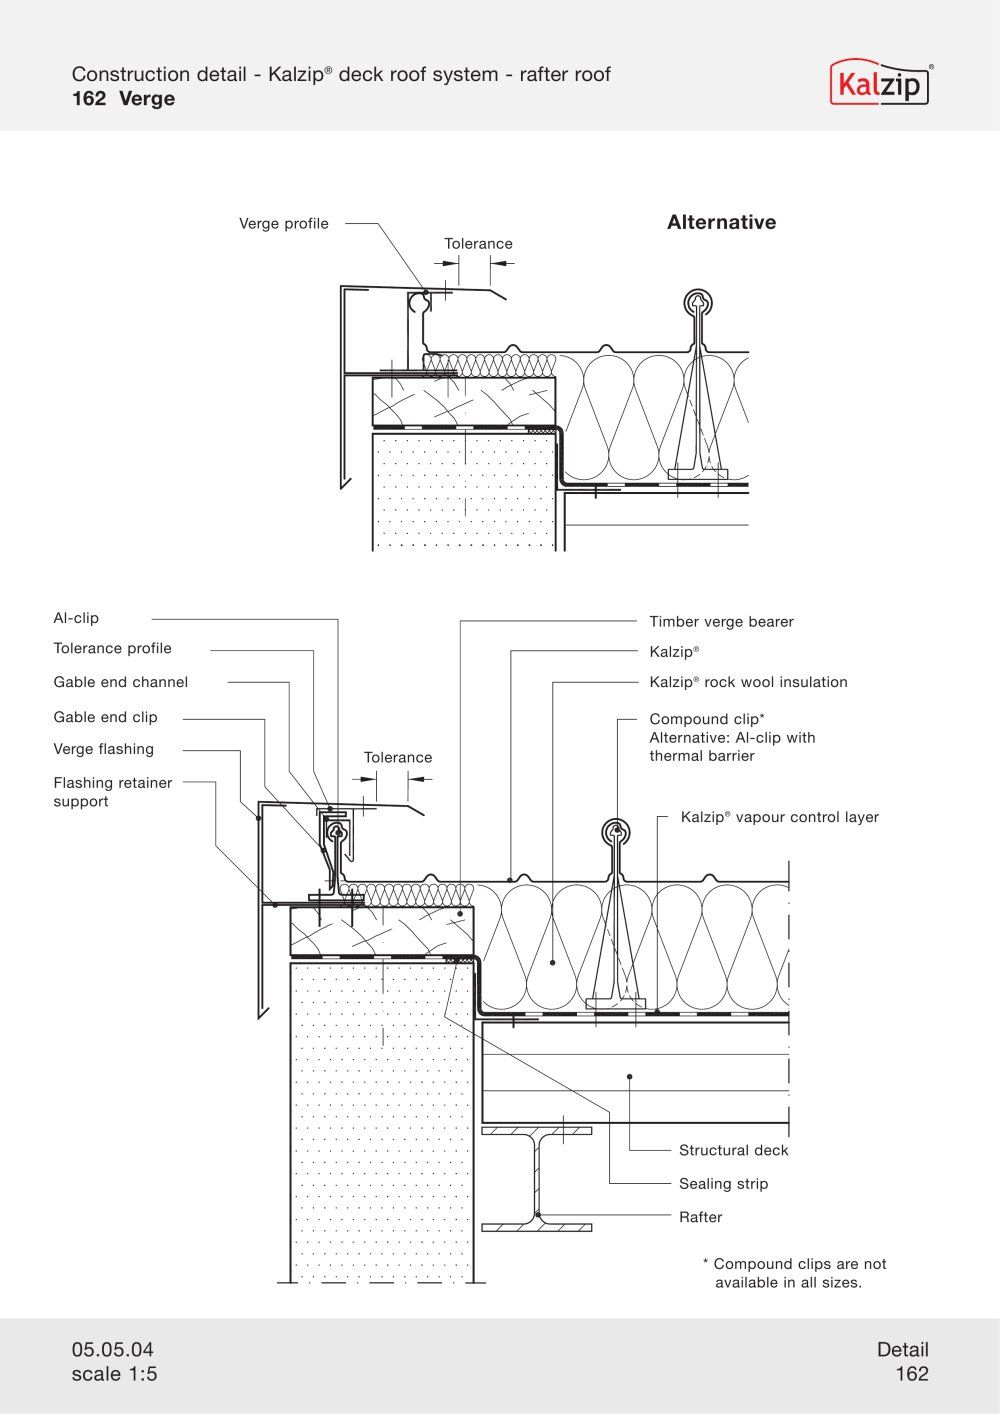 Auto cad drawings flat roof with parapet wall detail - Kalzip Construction Details